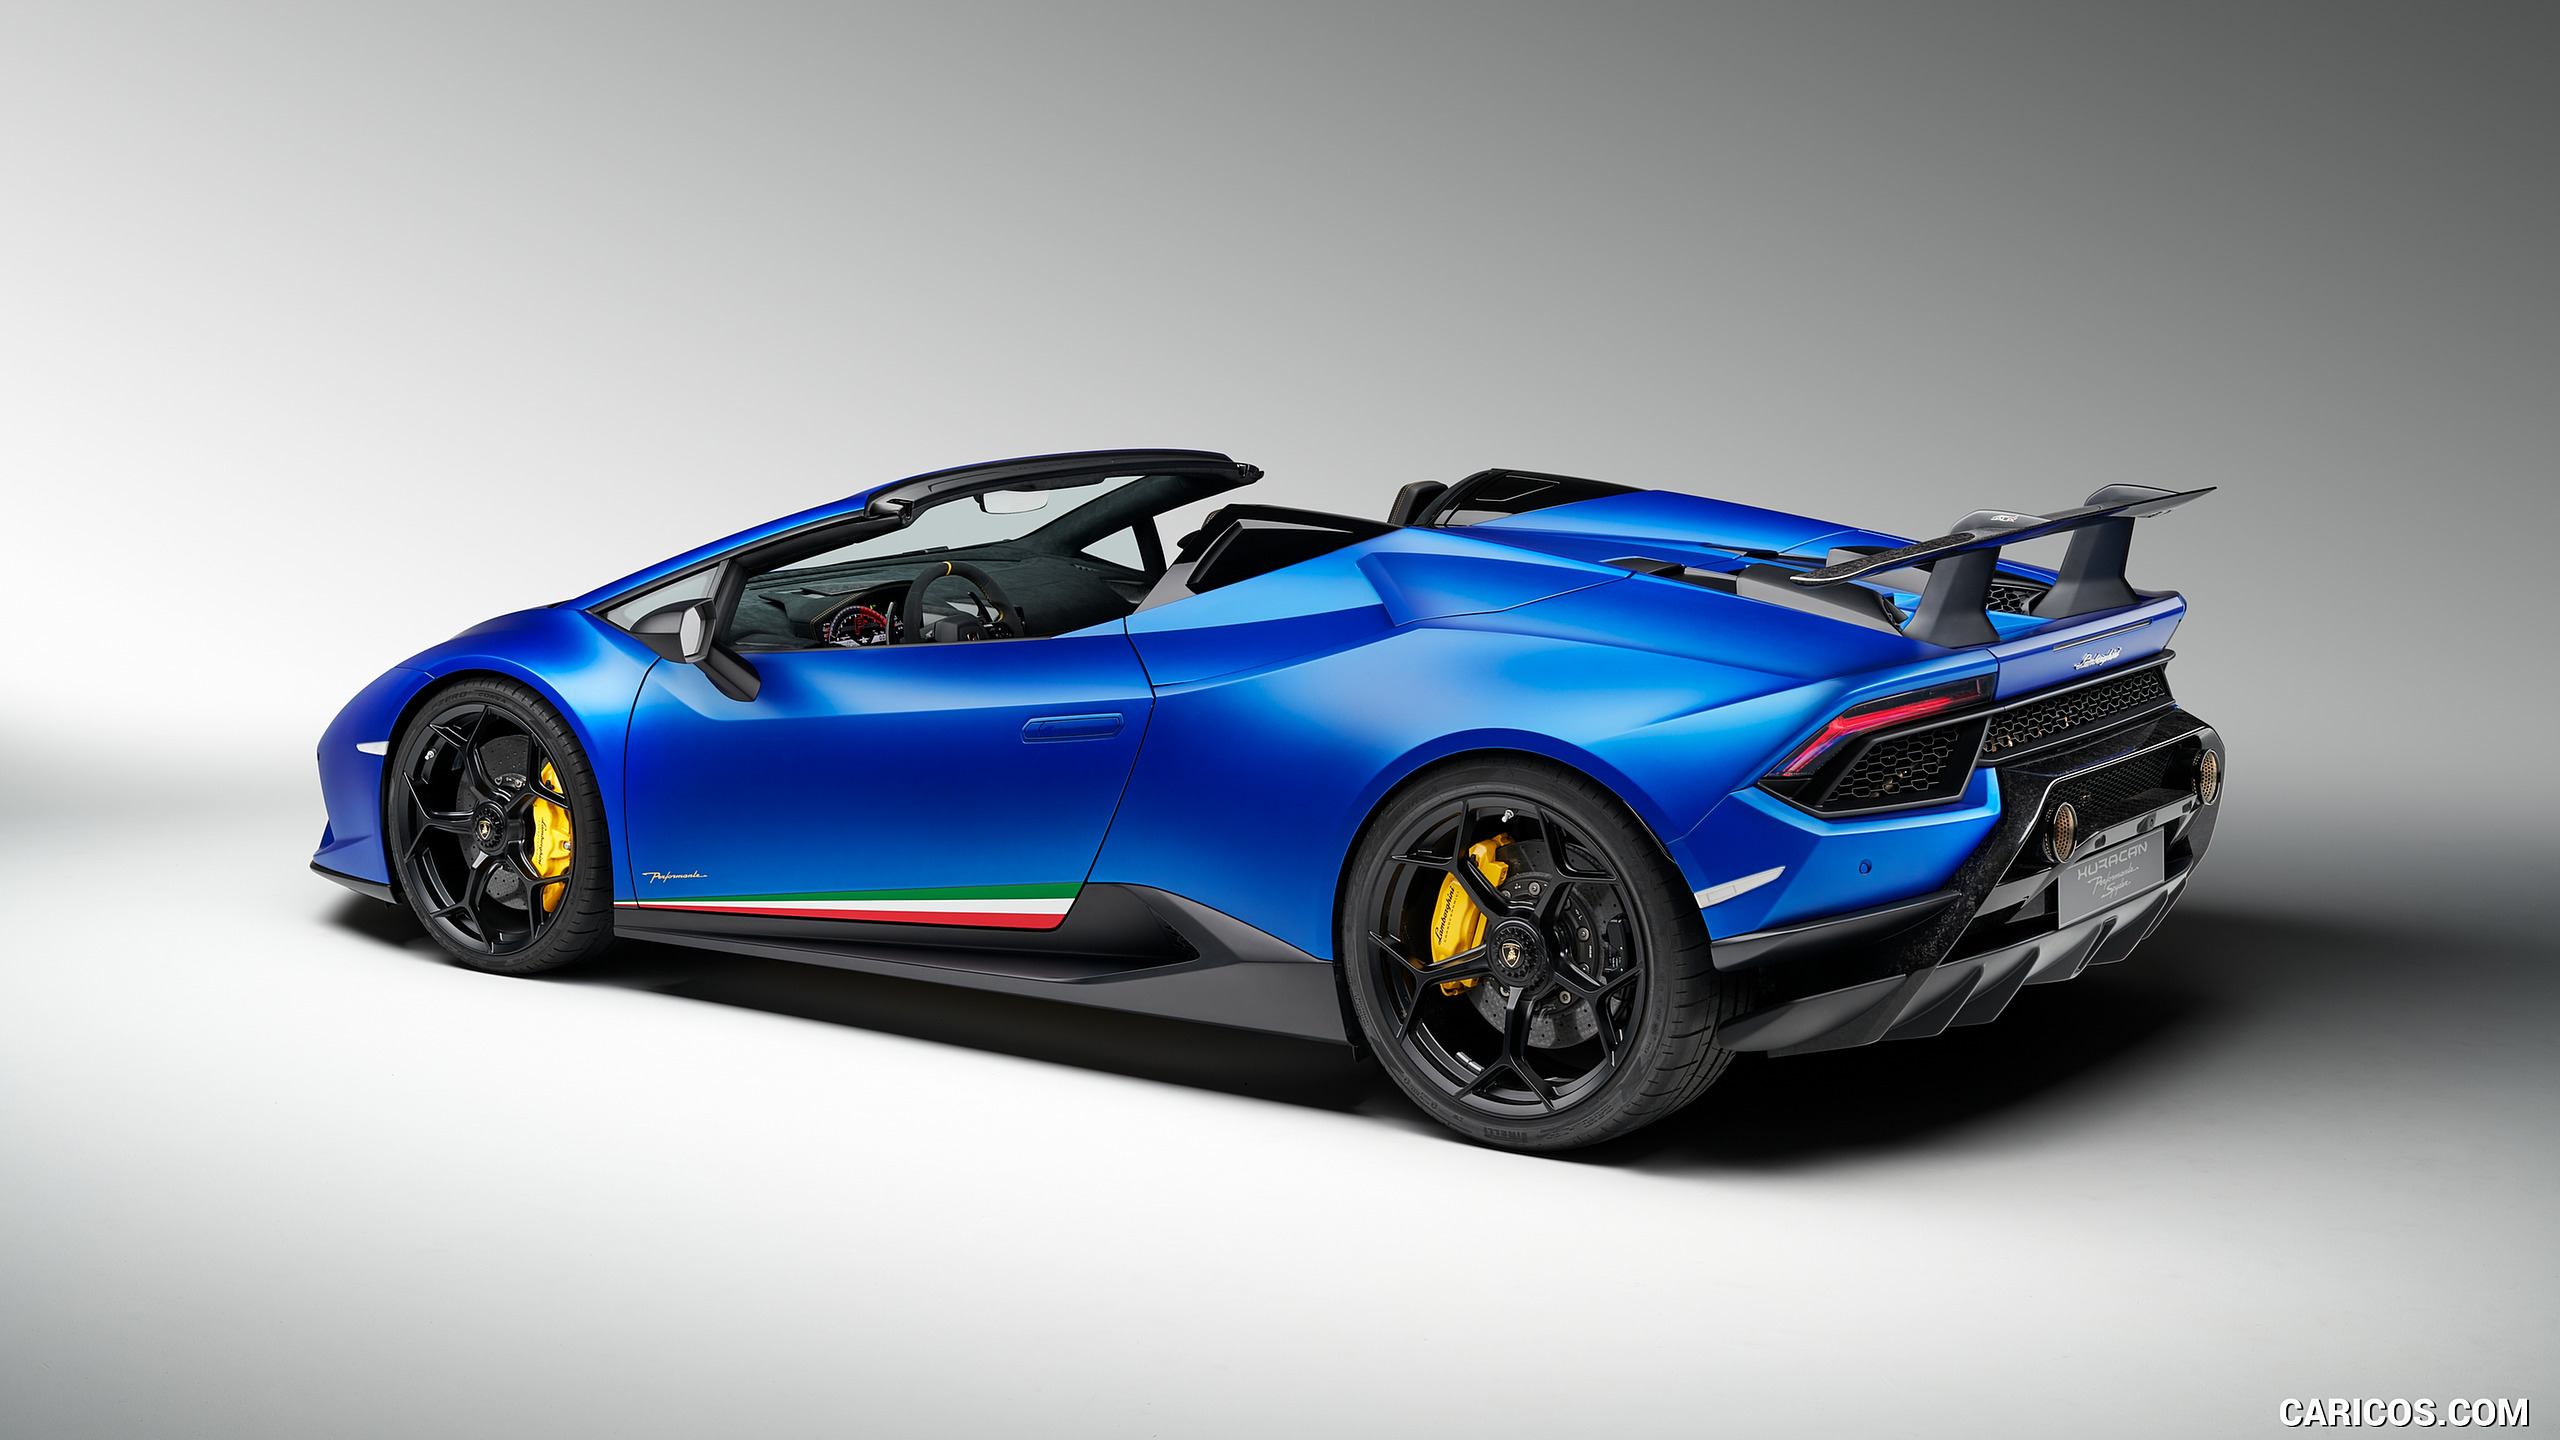 2019 Lamborghini Huracn Spyder Performante   Rear Three Quarter 2560x1440